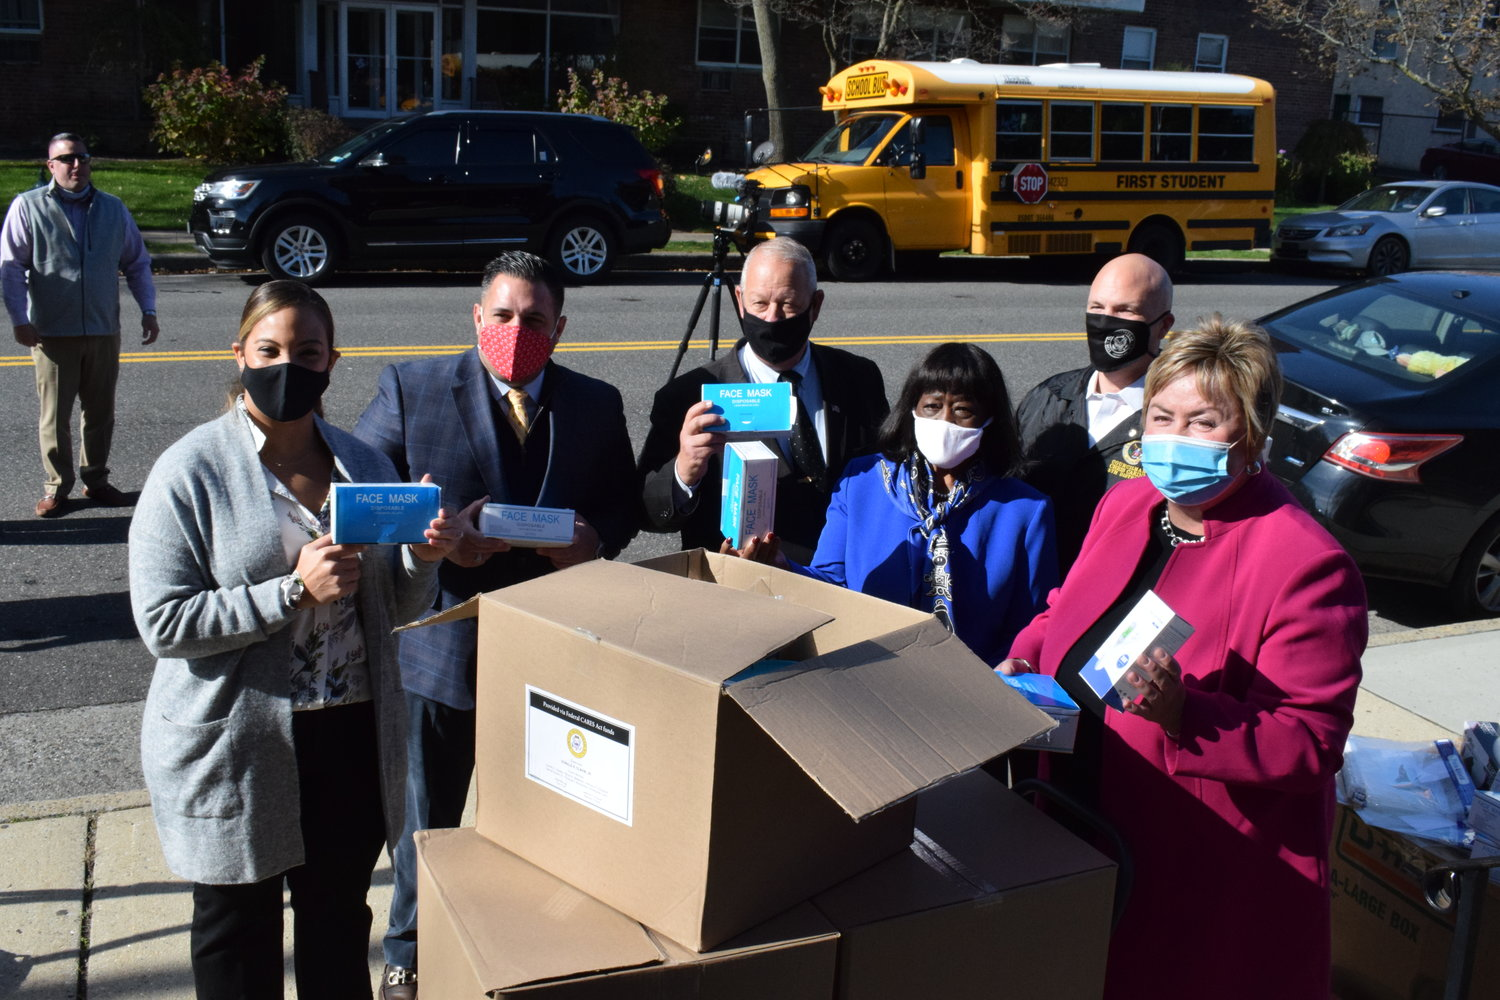 Jenny Jorge, of the Freeport Chamber of Commerce, far left, joined Hempstead Town Councilman Anthony Esposito, Freeport Mayor Robert Kennedy, Town Councilwoman Dorothy Goosby, Councilman Christopher Carini and Town Clerk Kate Murray to help distribute thousands of PPE items for local businesses.